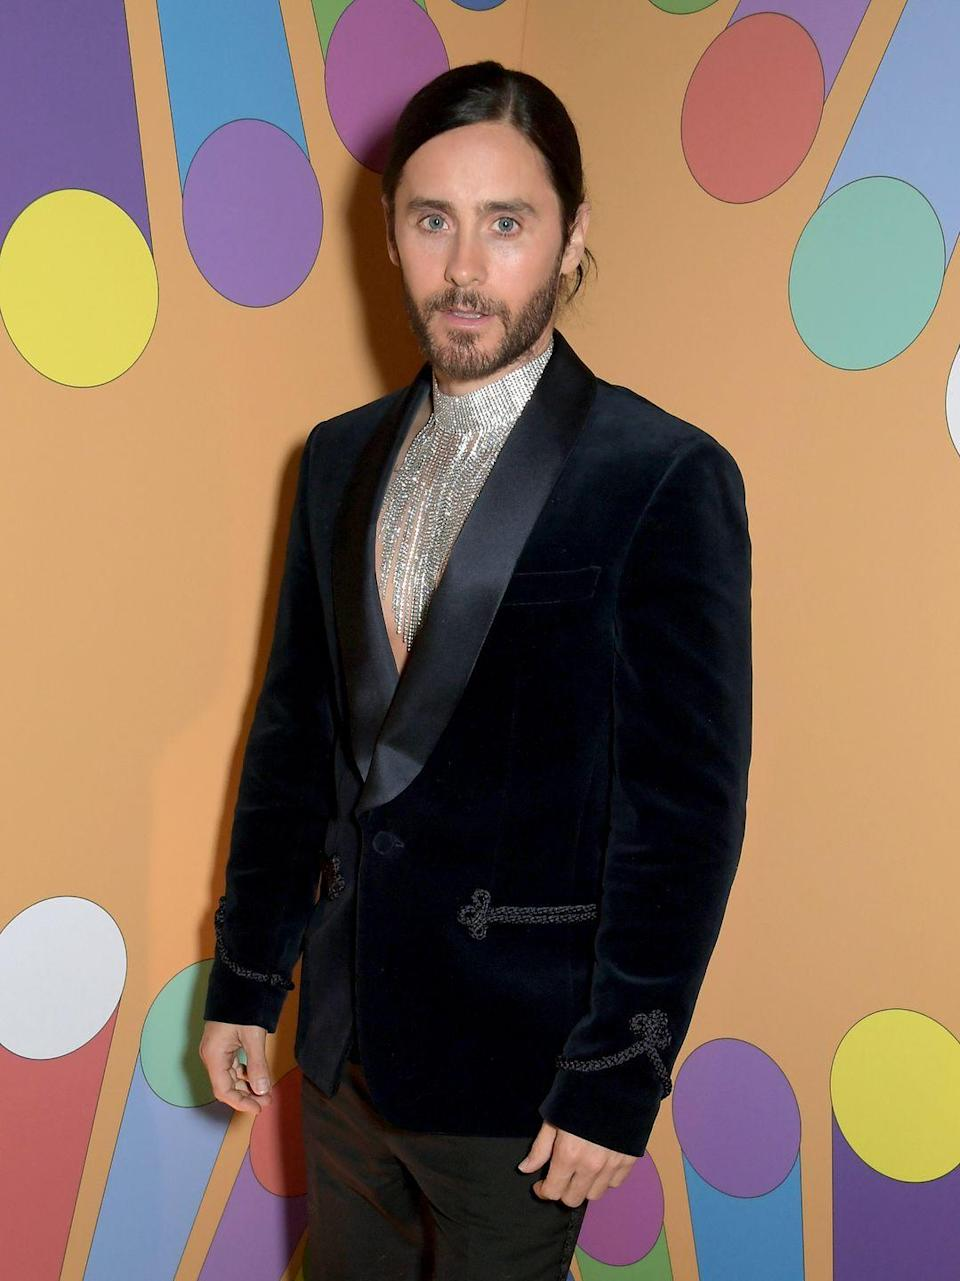 <p>Jared, whose face literally hasn't aged at all (I NEED TO KNOW HIS SKINCARE ROUTINE!), went very ~fashion~ and is now a staple on the Met Gala red carpet and in Gucci ads. He's also the lead singer of the rock band Thirty Seconds to Mars and is still acting—you may have heard that he played the Joker in a little movie called <em>Suicide Squad</em>? </p>